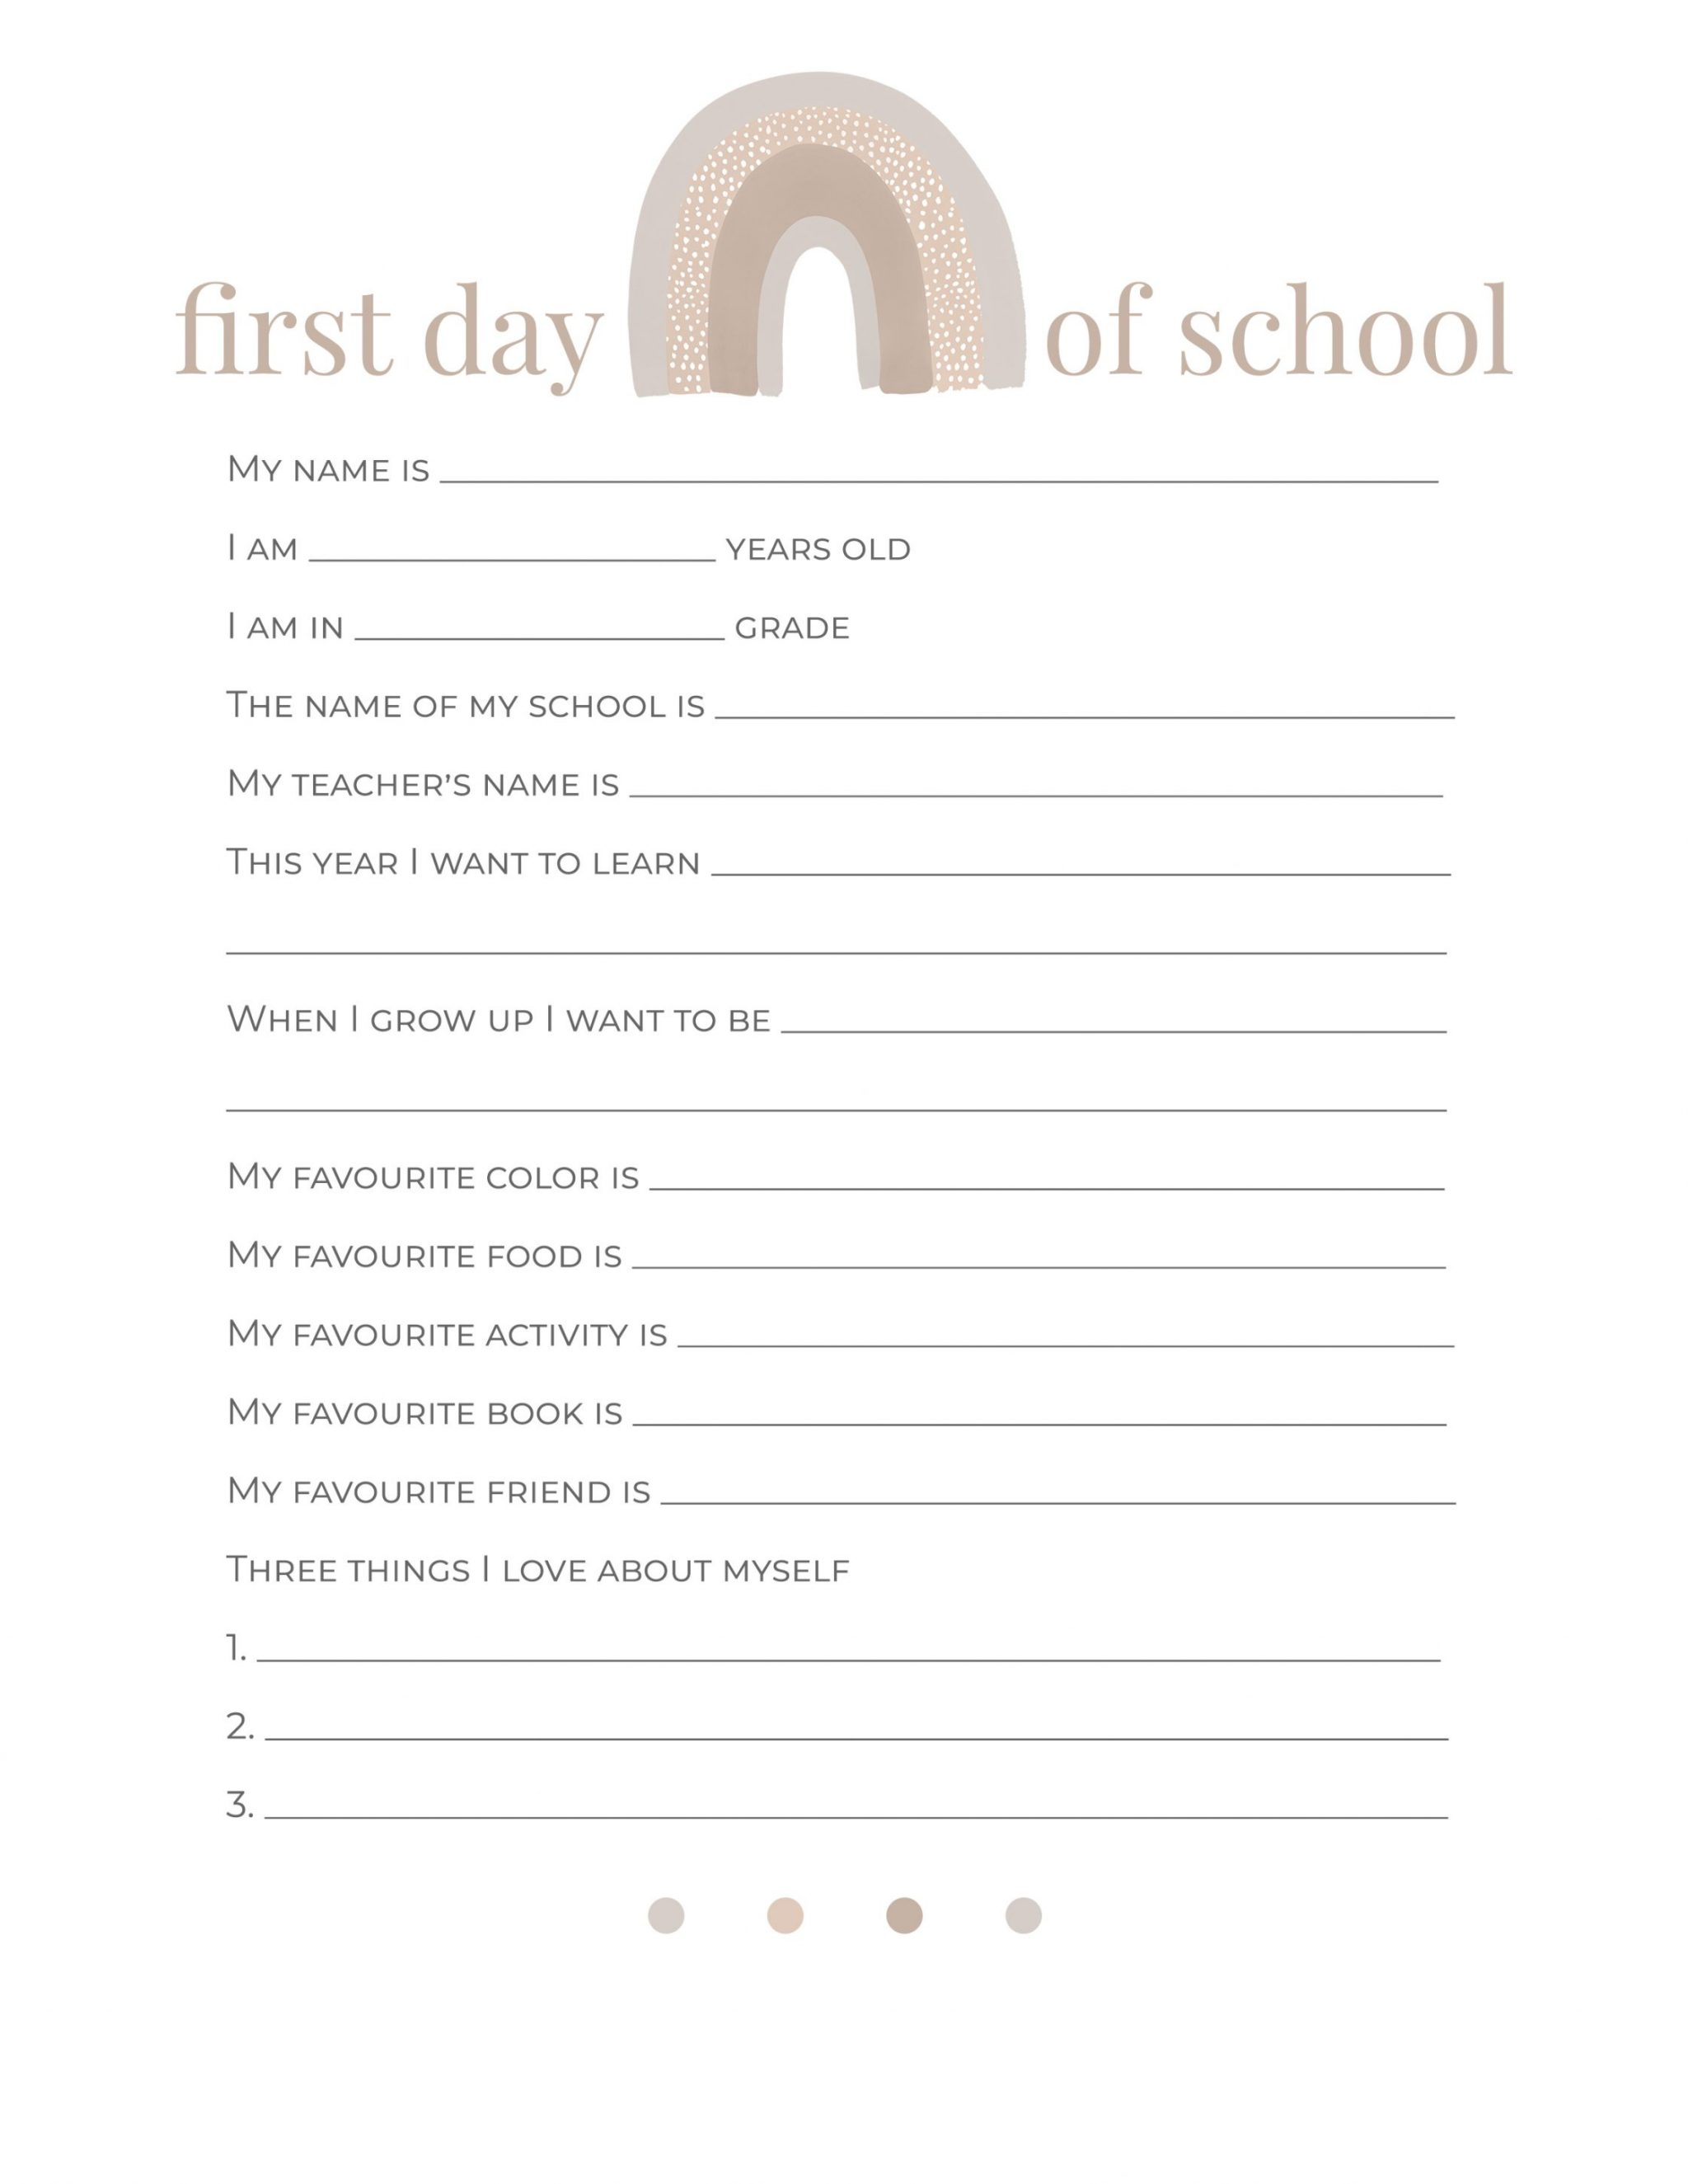 First day of school questionnaire free download pdf